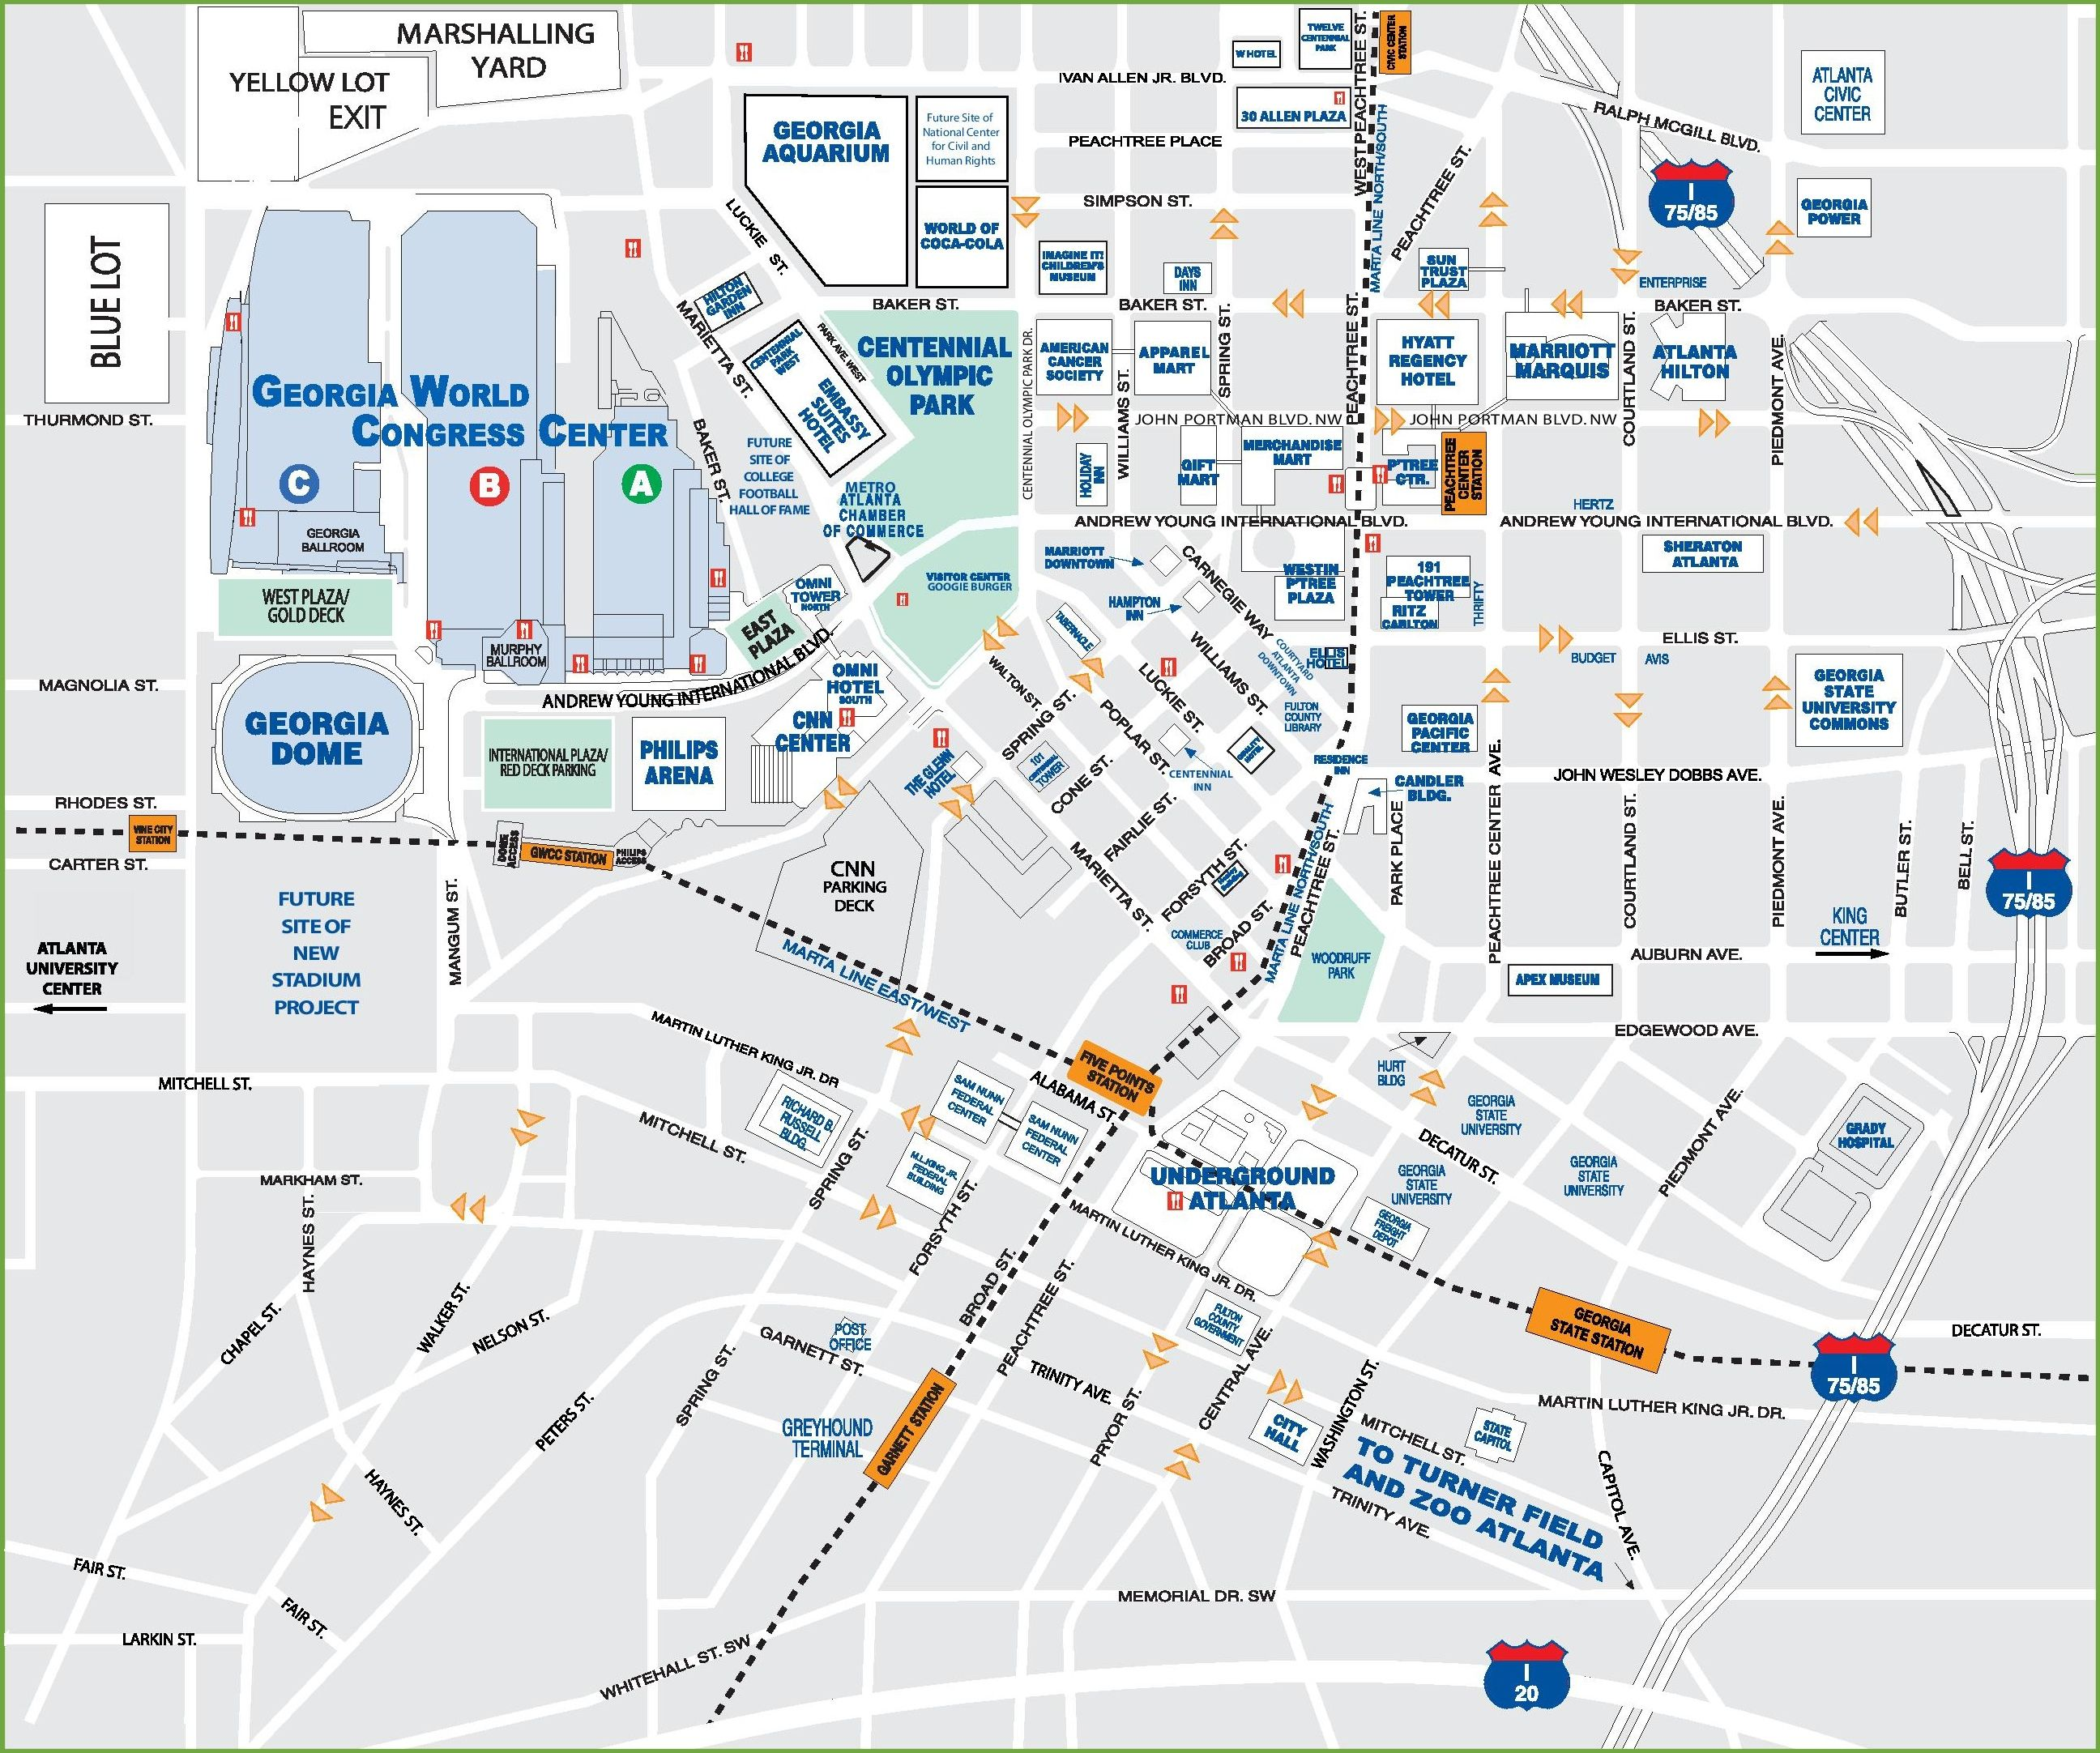 Downtown Atlanta tourist map | Atlanta | Tourist map ... on gila river arena map, amicalola falls georgia map, heinz field map, tokyo dome city map, mapquest georgia map, edward jones dome map, superdome map, world of coke map, covington georgia map, target center map, terminus georgia map, tacoma dome parking lot map, cobb county georgia map, georgia state university map, carrier dome map, the palace of auburn hills map, north georgia premium outlets map, royal farms arena map, plains georgia map, georgia tech map,